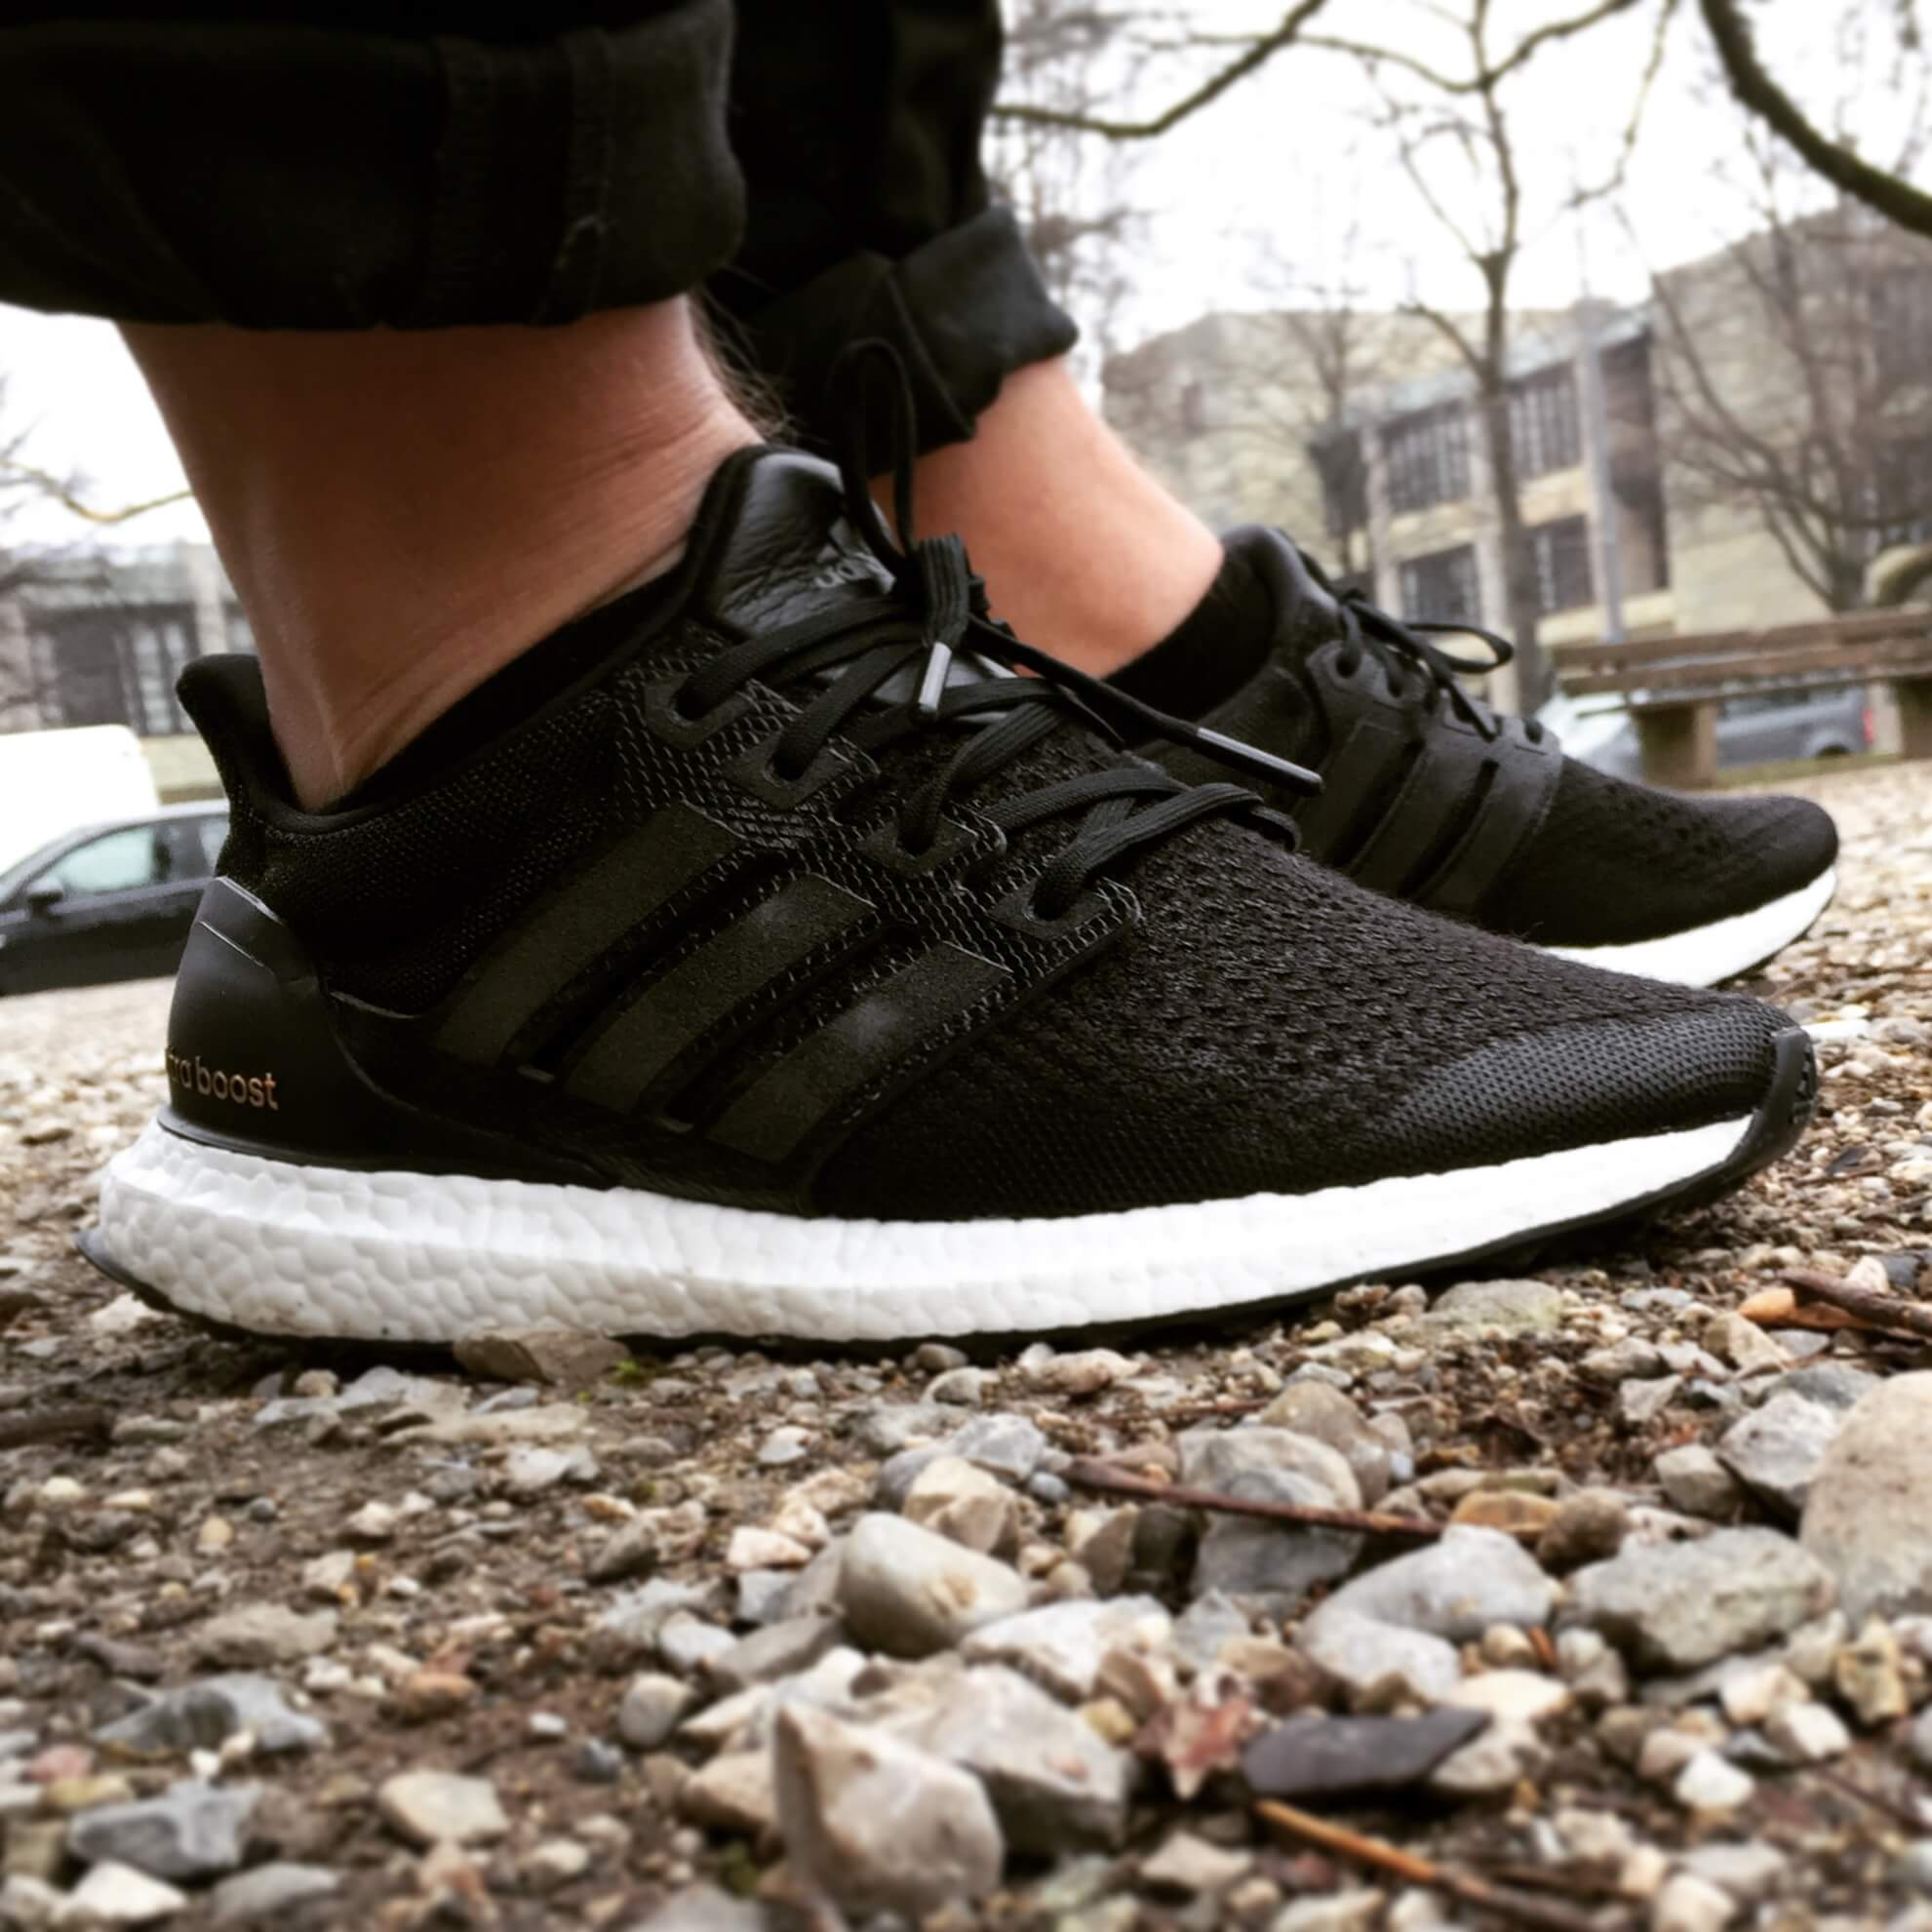 Adidas-Ultra Boost-J&D-Collective-Side-View-Alternate-Benstah-Onfeet